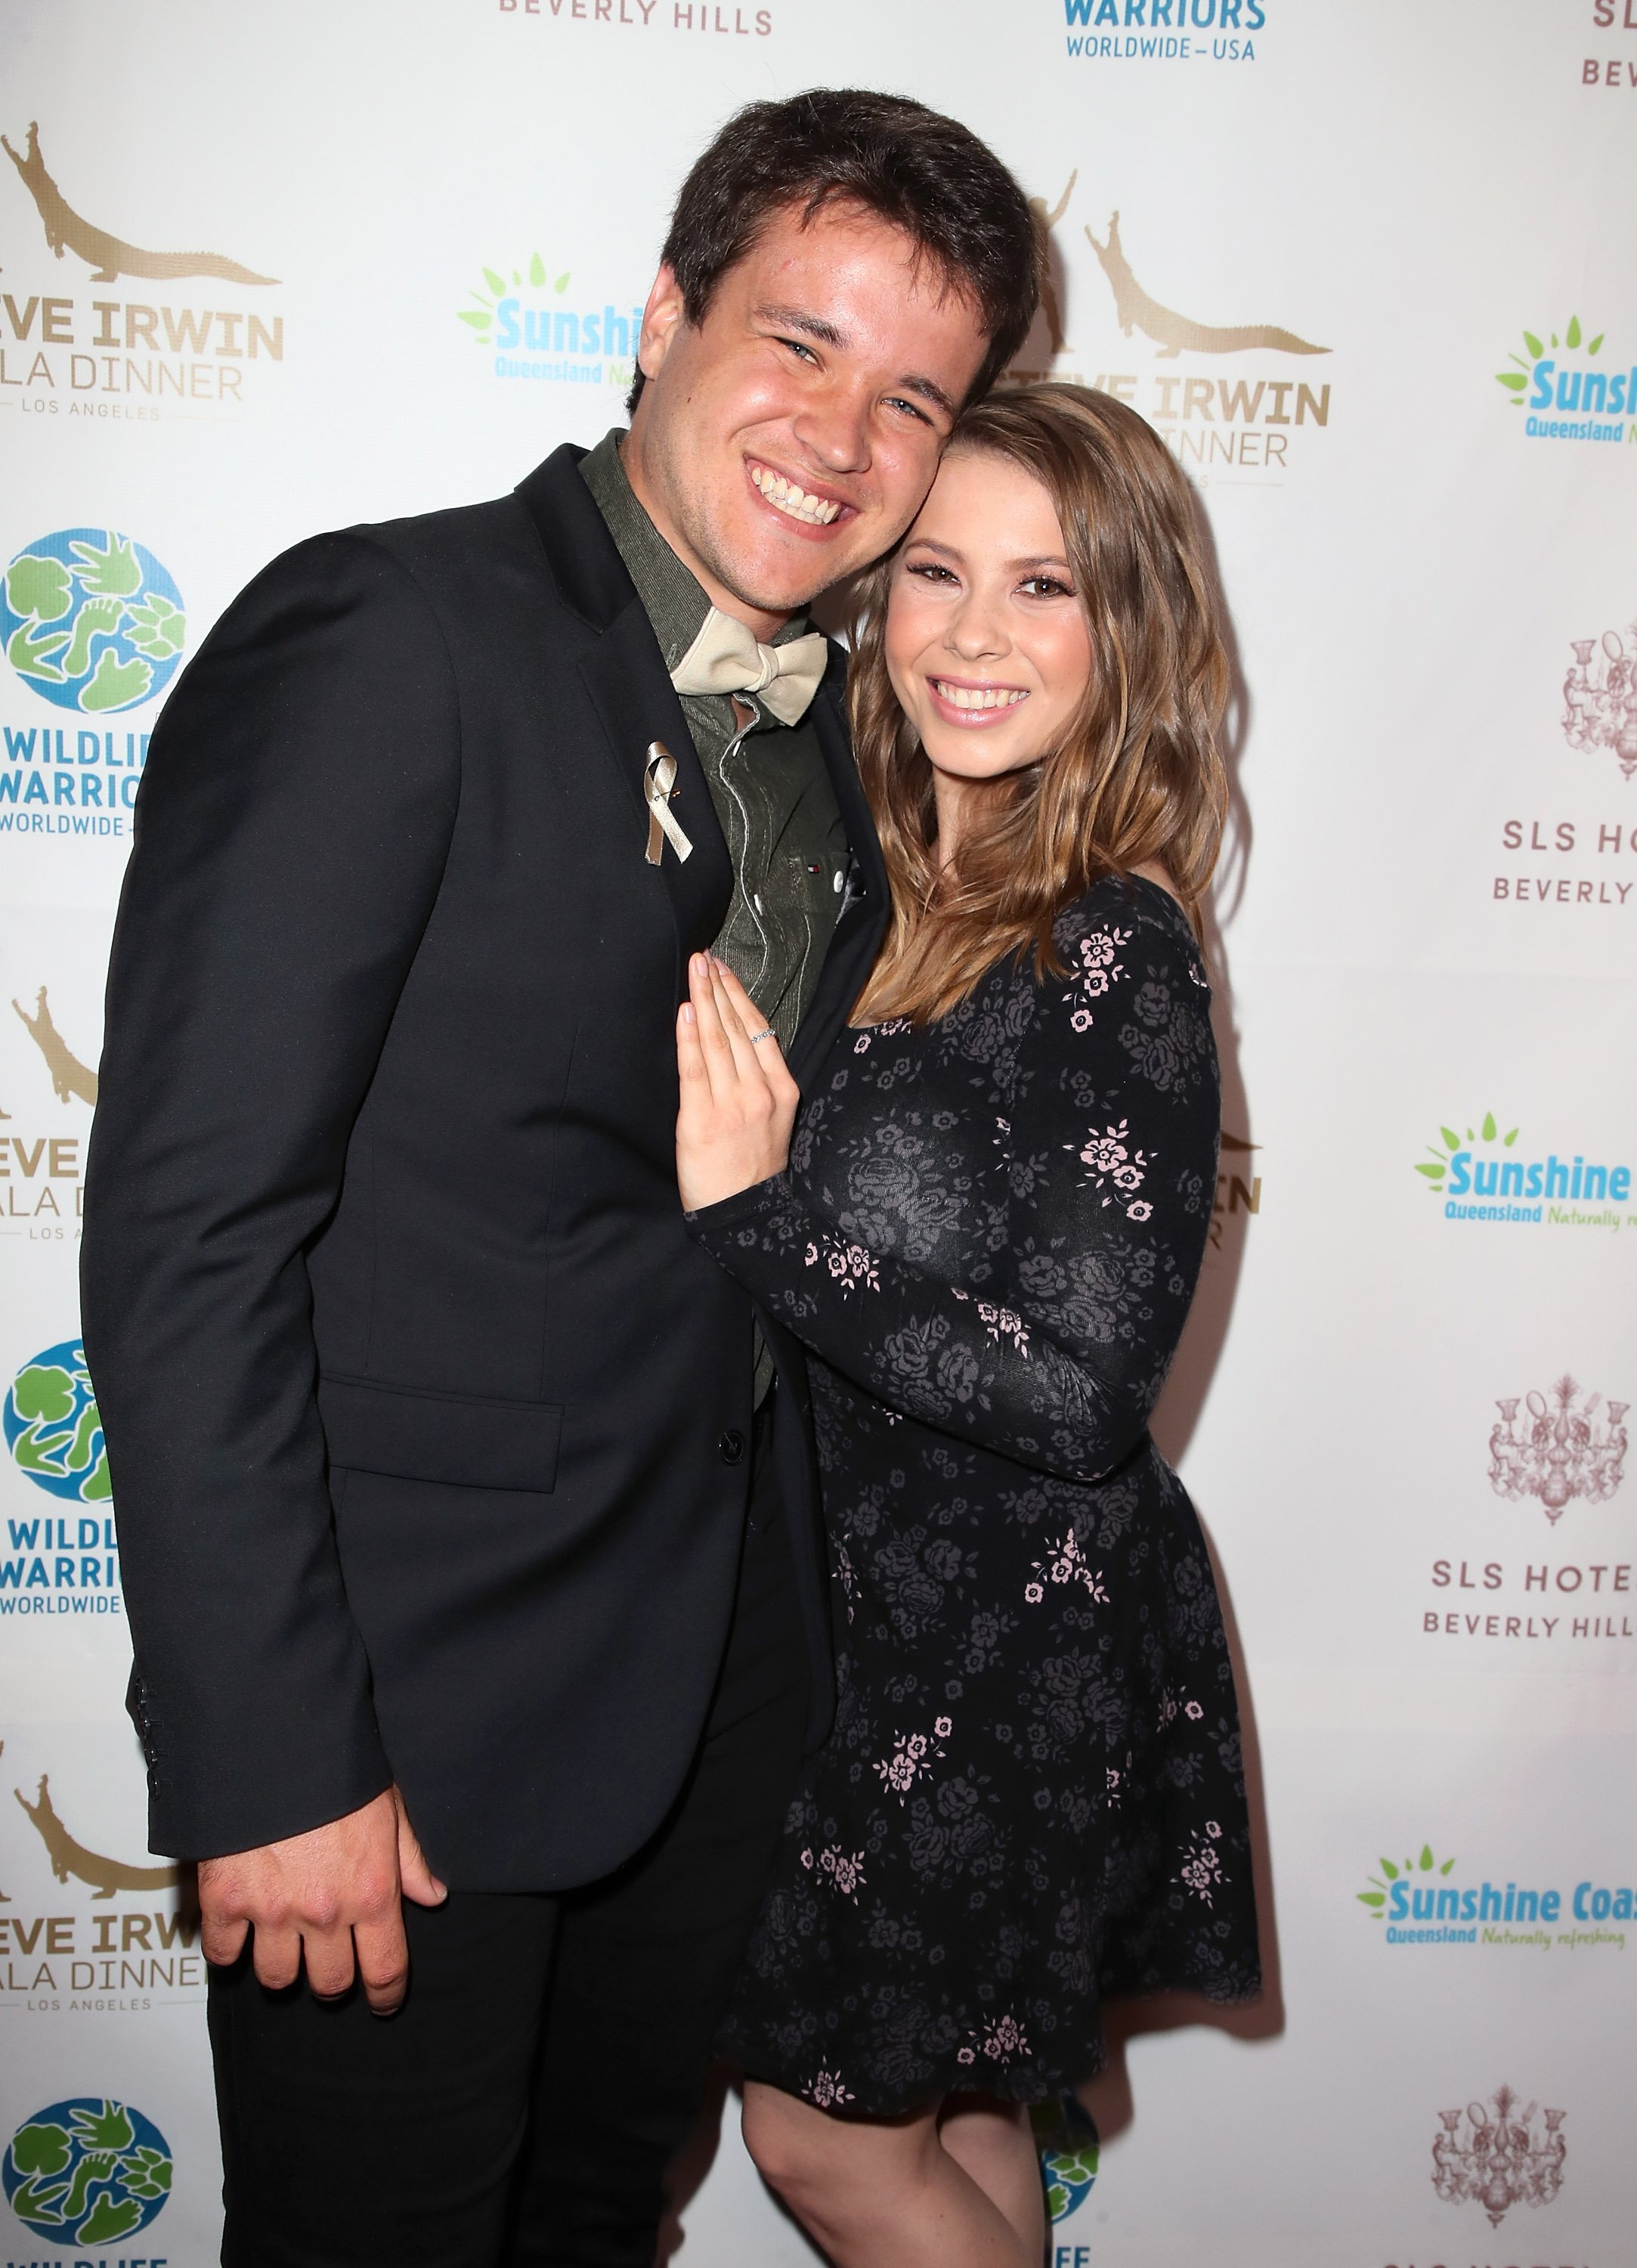 Chandler Powell and Bindi Irwin attend the Steve Irwin Gala Dinner 2018 at SLS Hotel on May 5, 2018 in Beverly Hills, California | Photo: Getty Images